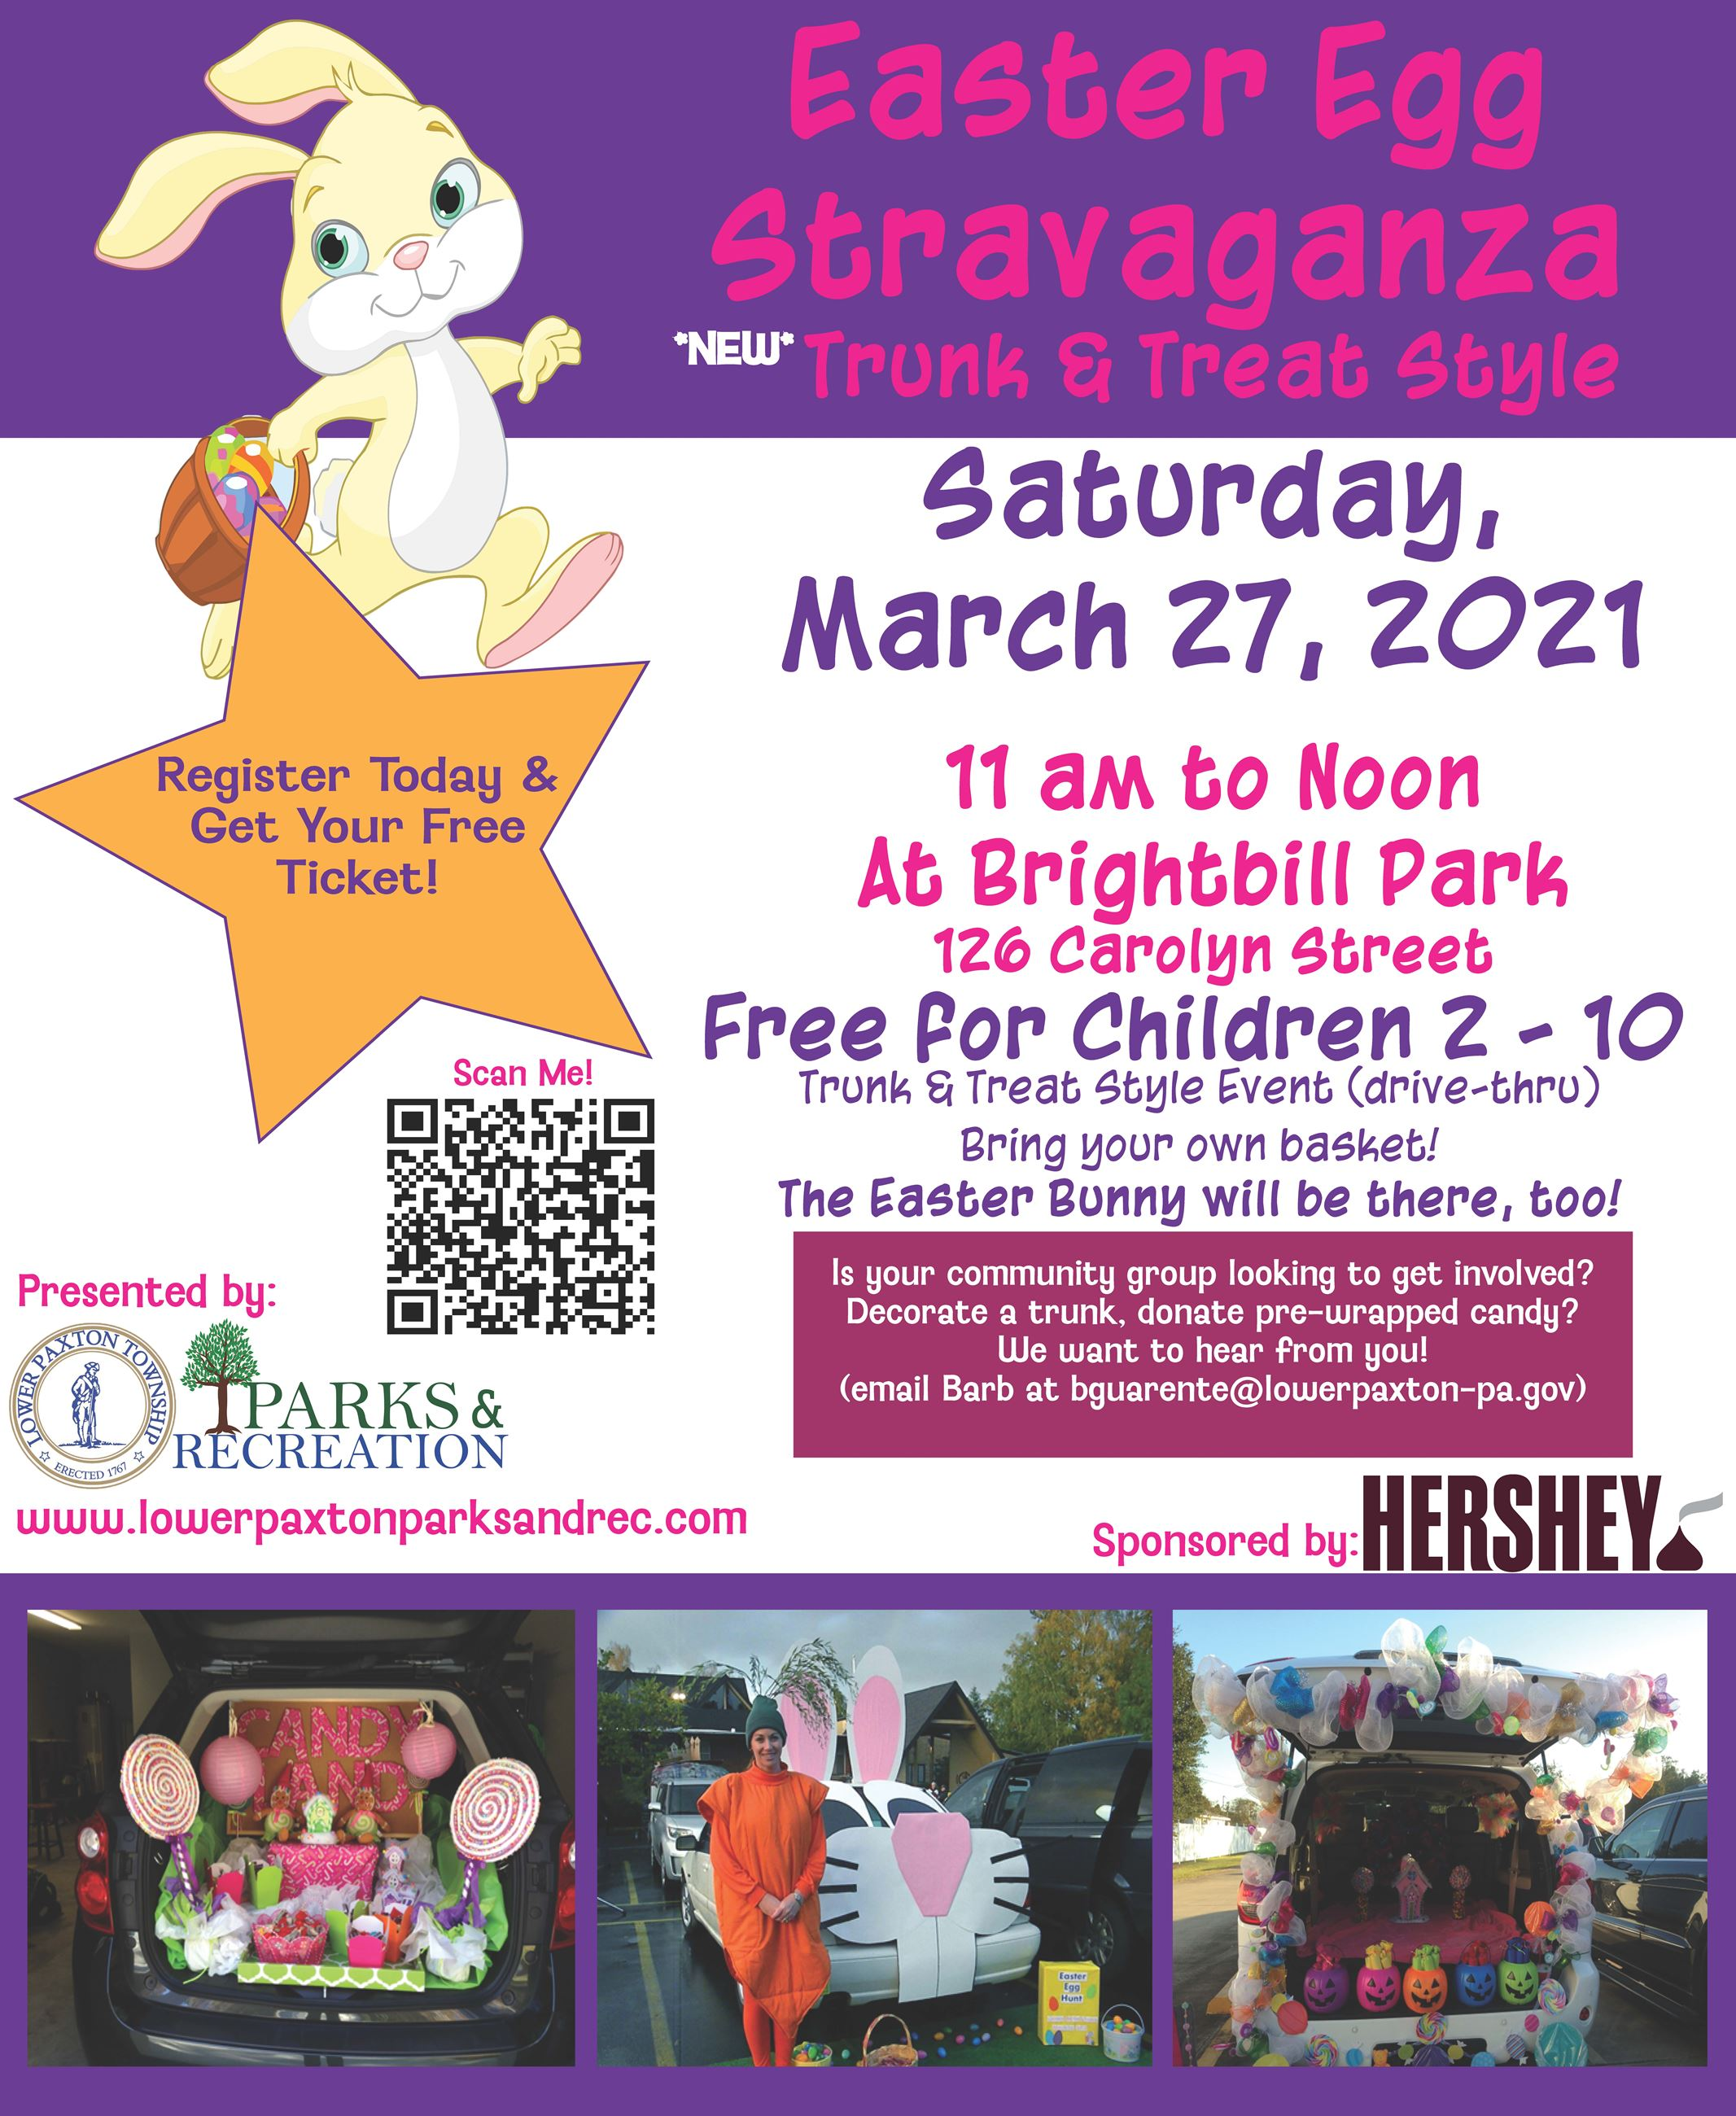 Easter Egg Stravaganza Flyer 2021